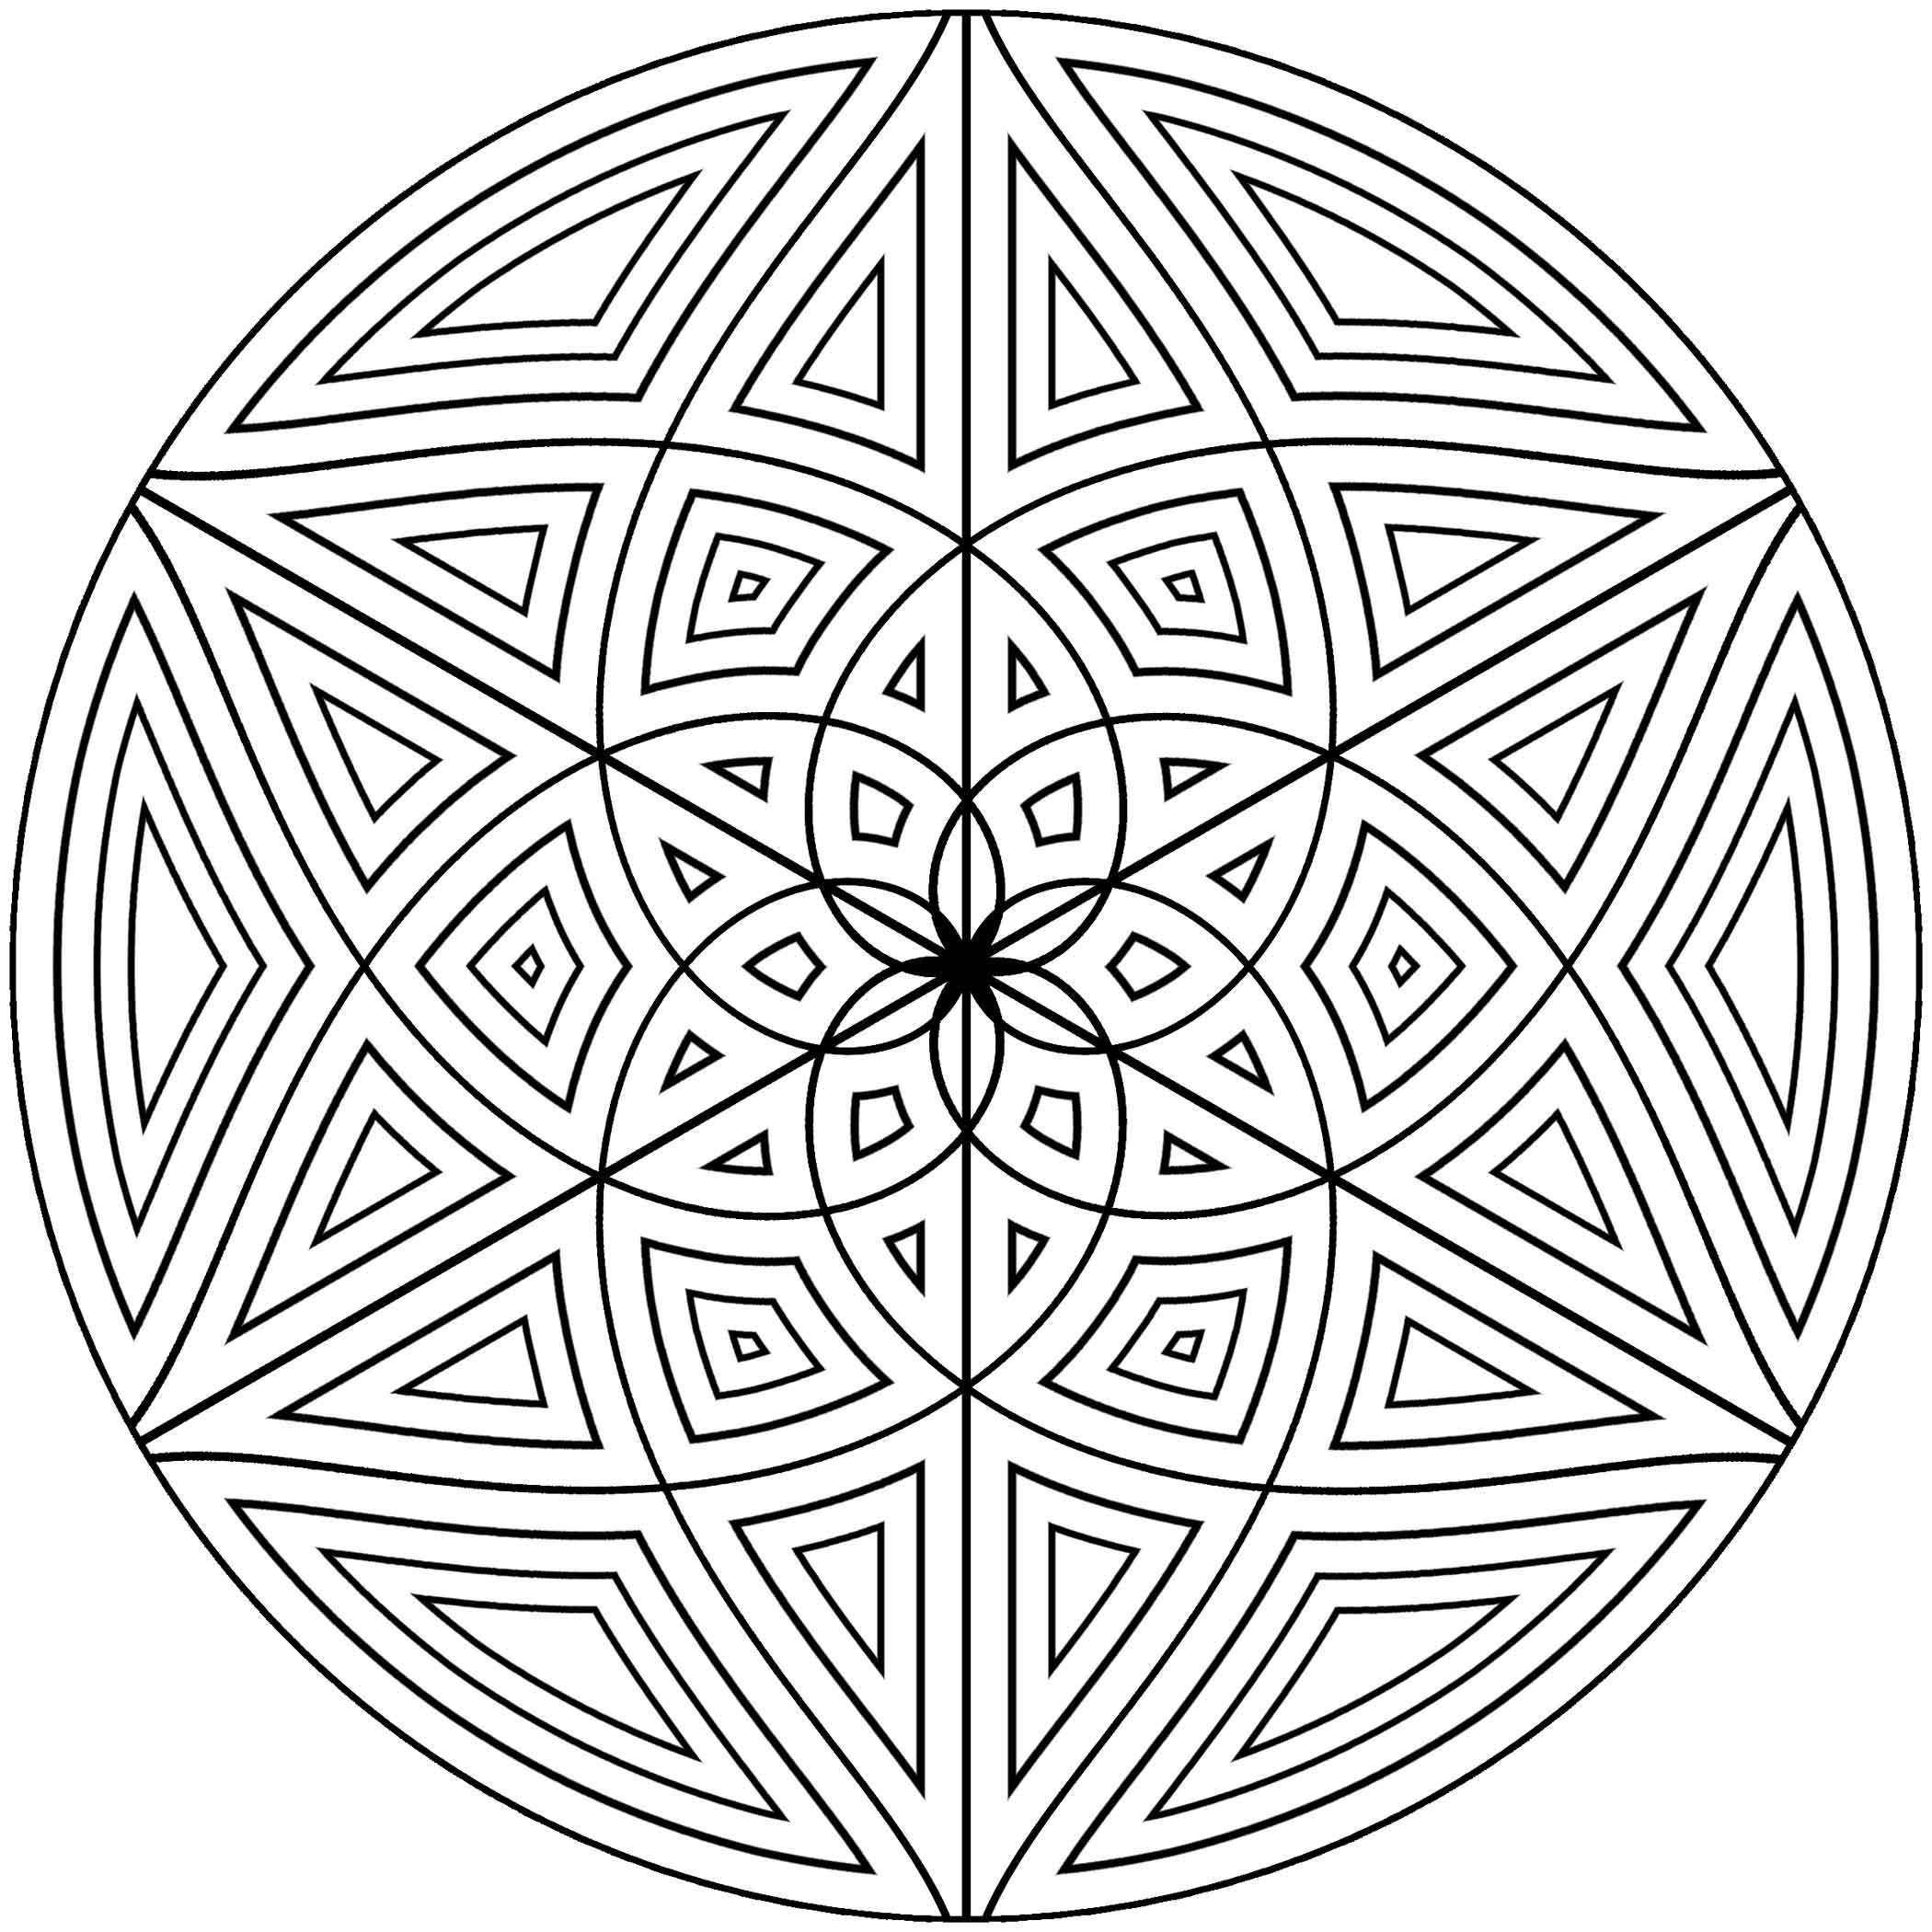 coloring pages patterns | Free Printable Geometric Coloring Pages for Adults.